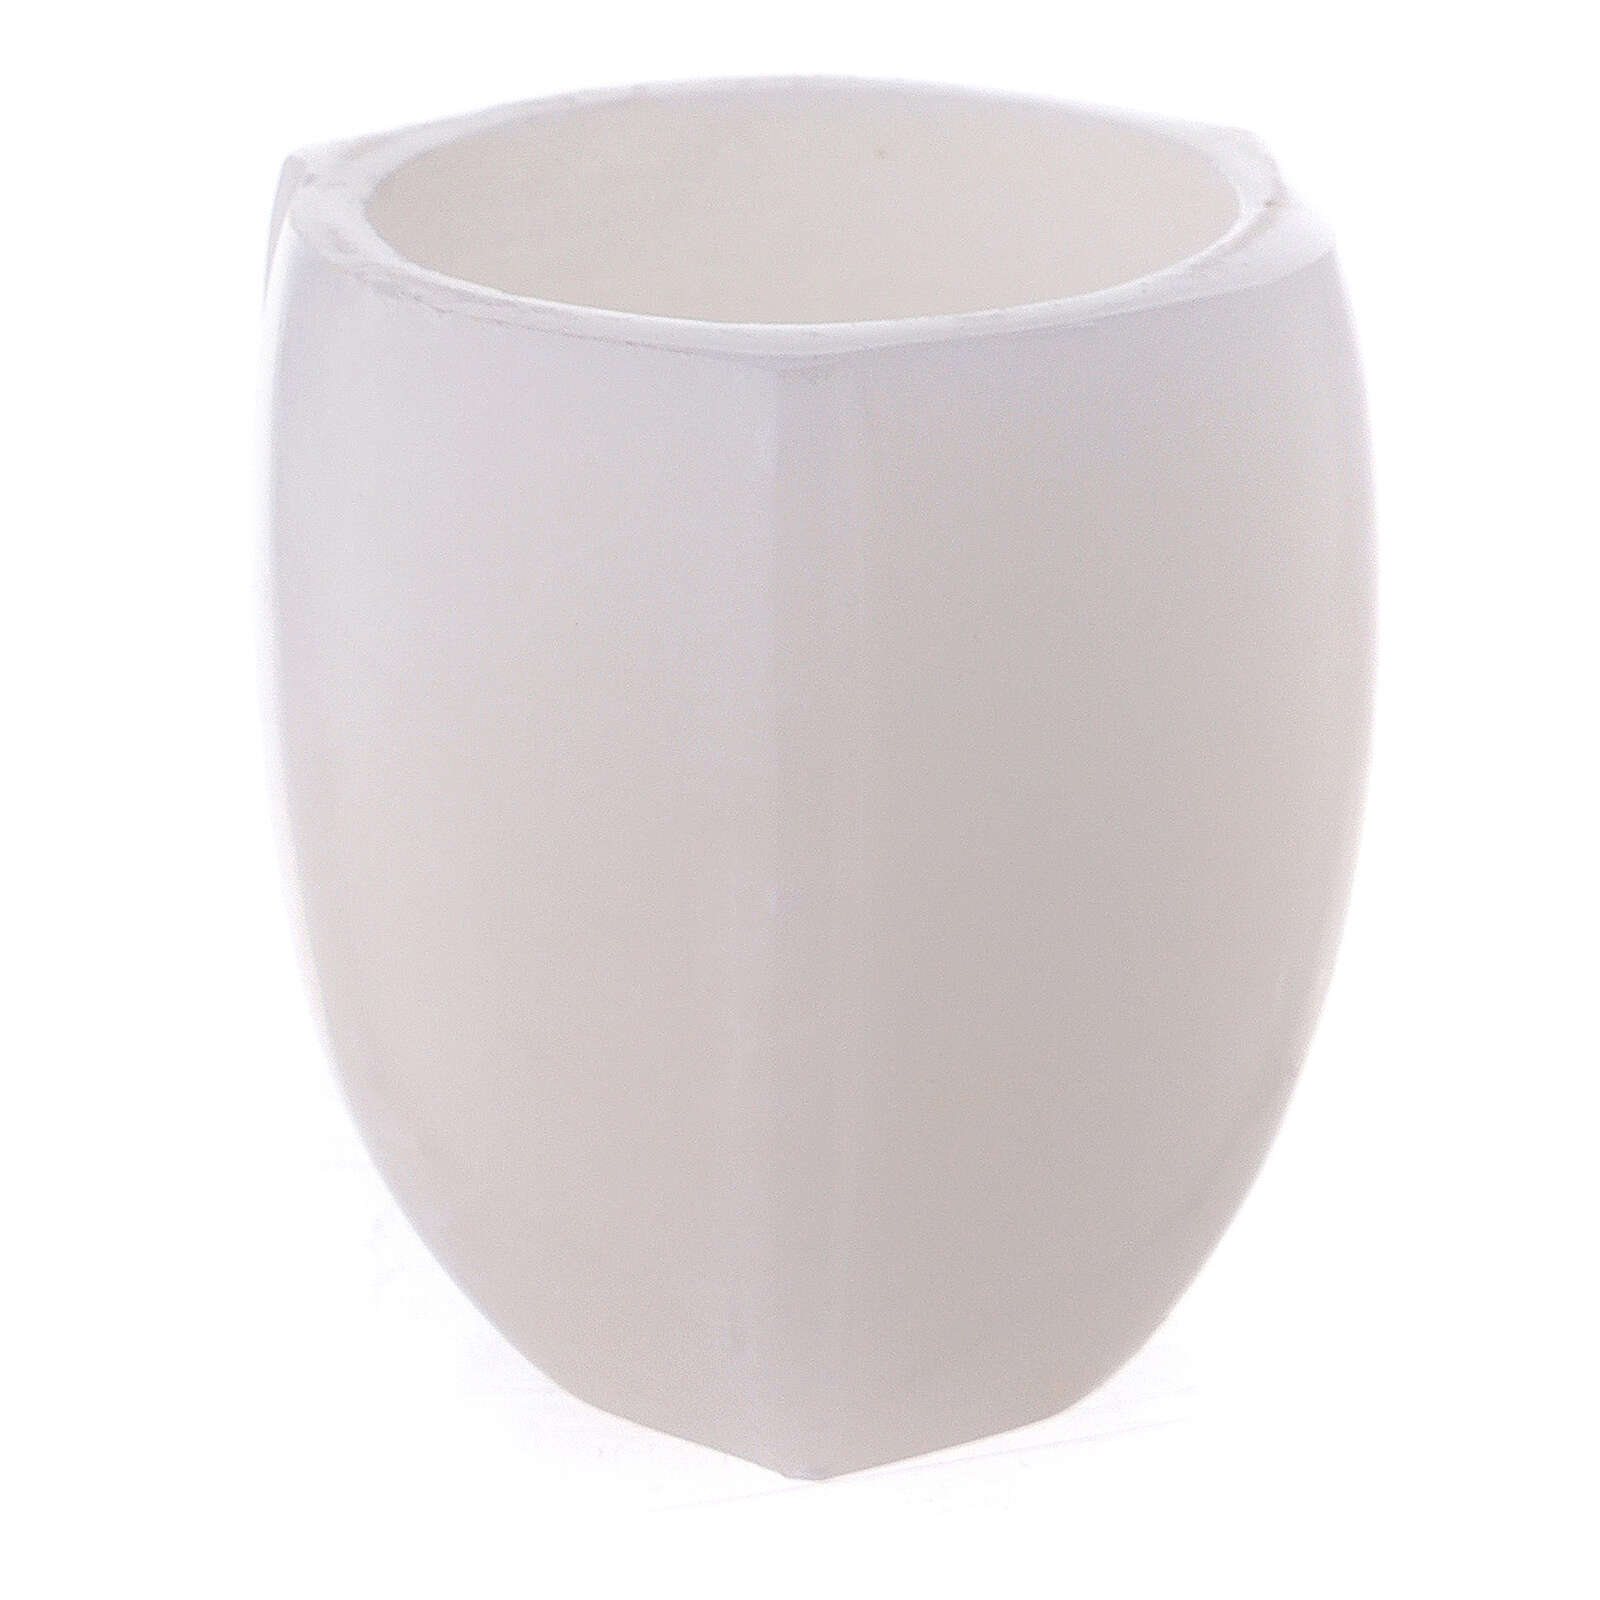 White soapstone tapered incense bowl 2 1/2 in 3